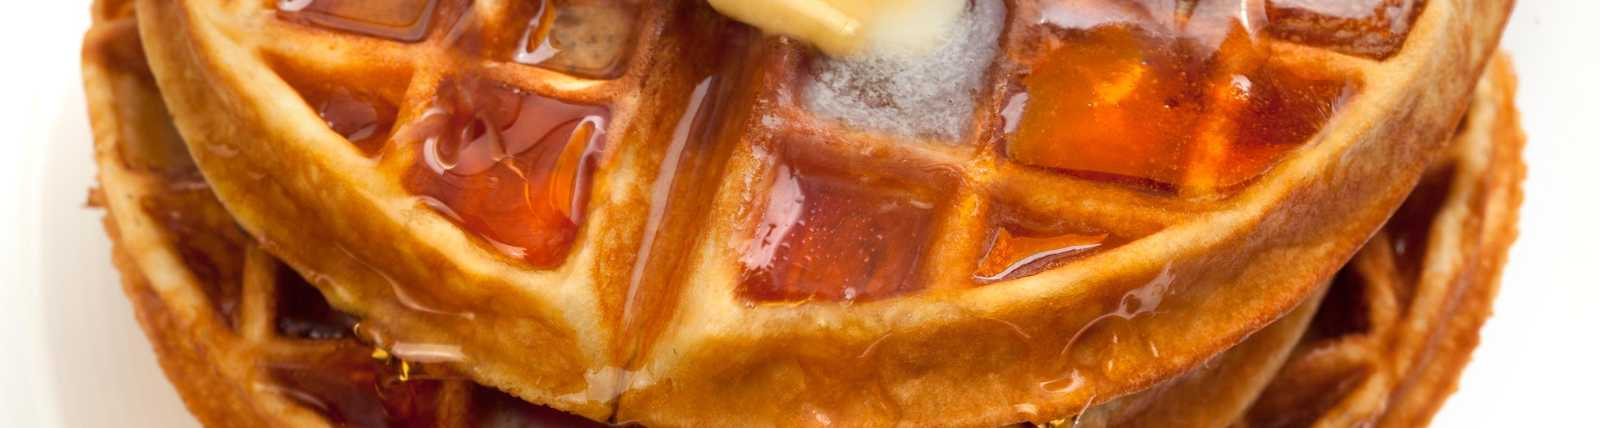 Our complimentary breakfast includes hot, fresh waffles!